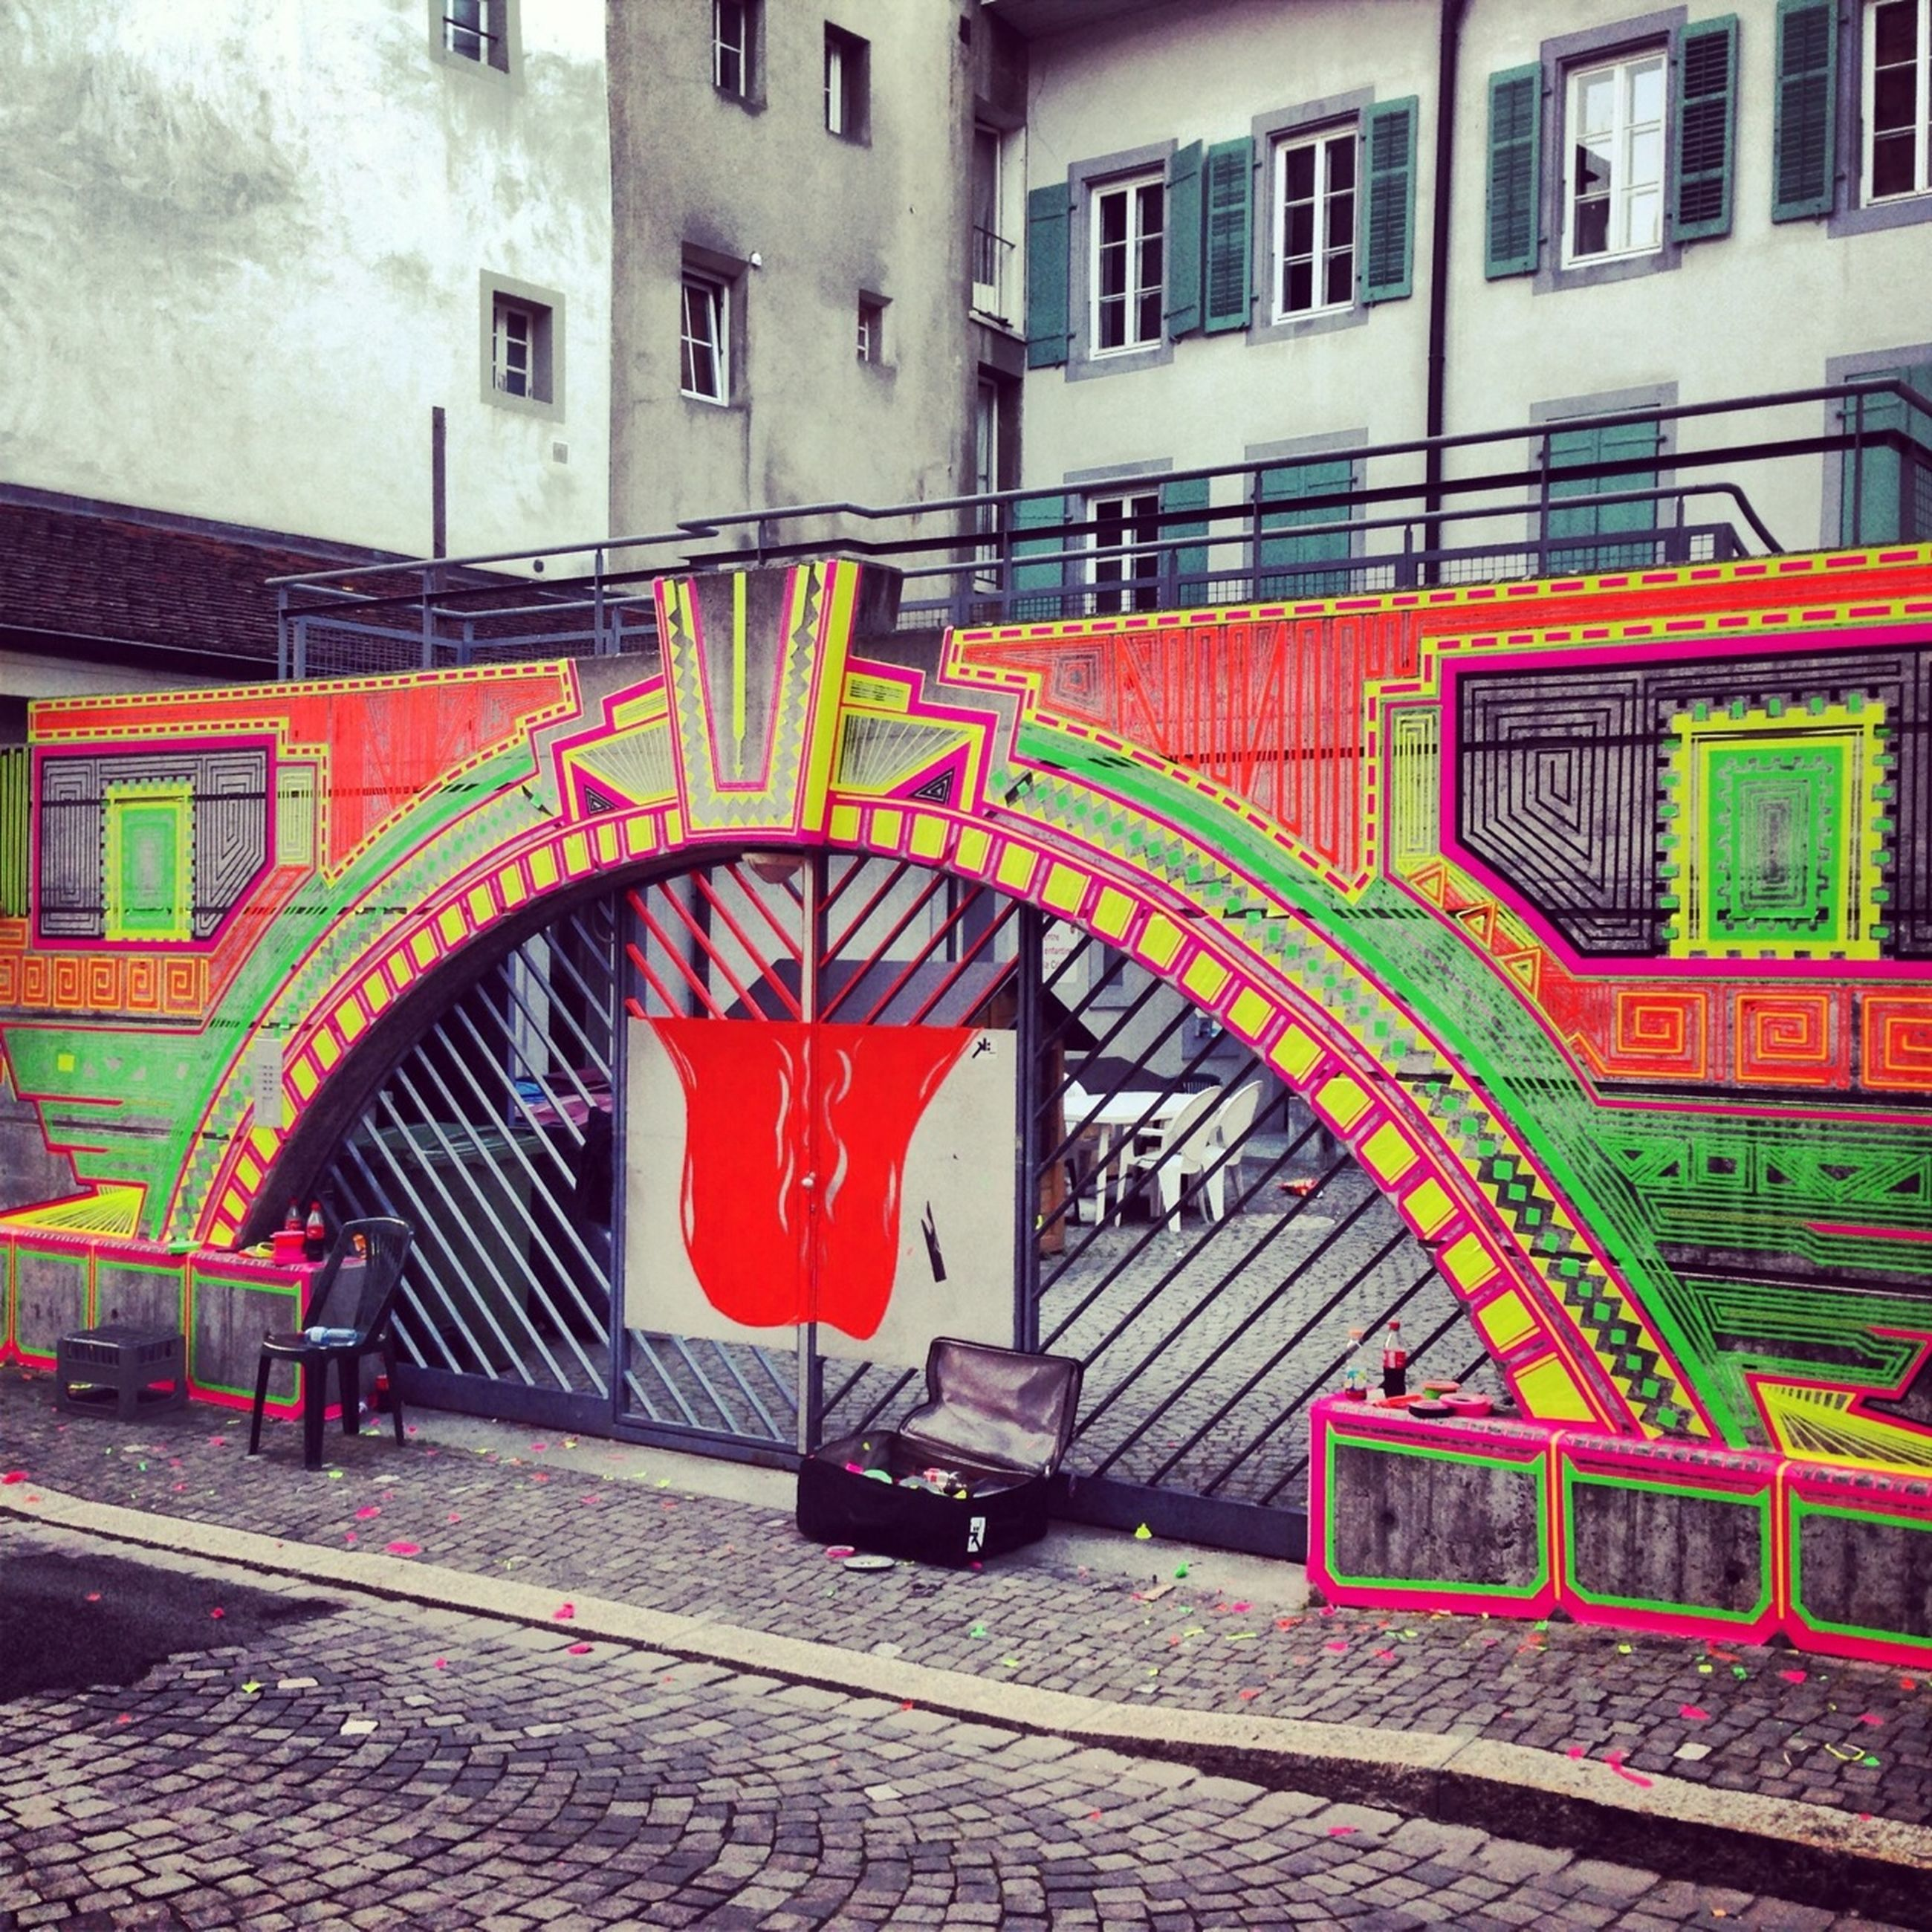 architecture, built structure, building exterior, arch, red, multi colored, graffiti, city, art and craft, building, art, cobblestone, day, street, outdoors, railing, wall - building feature, creativity, entrance, steps